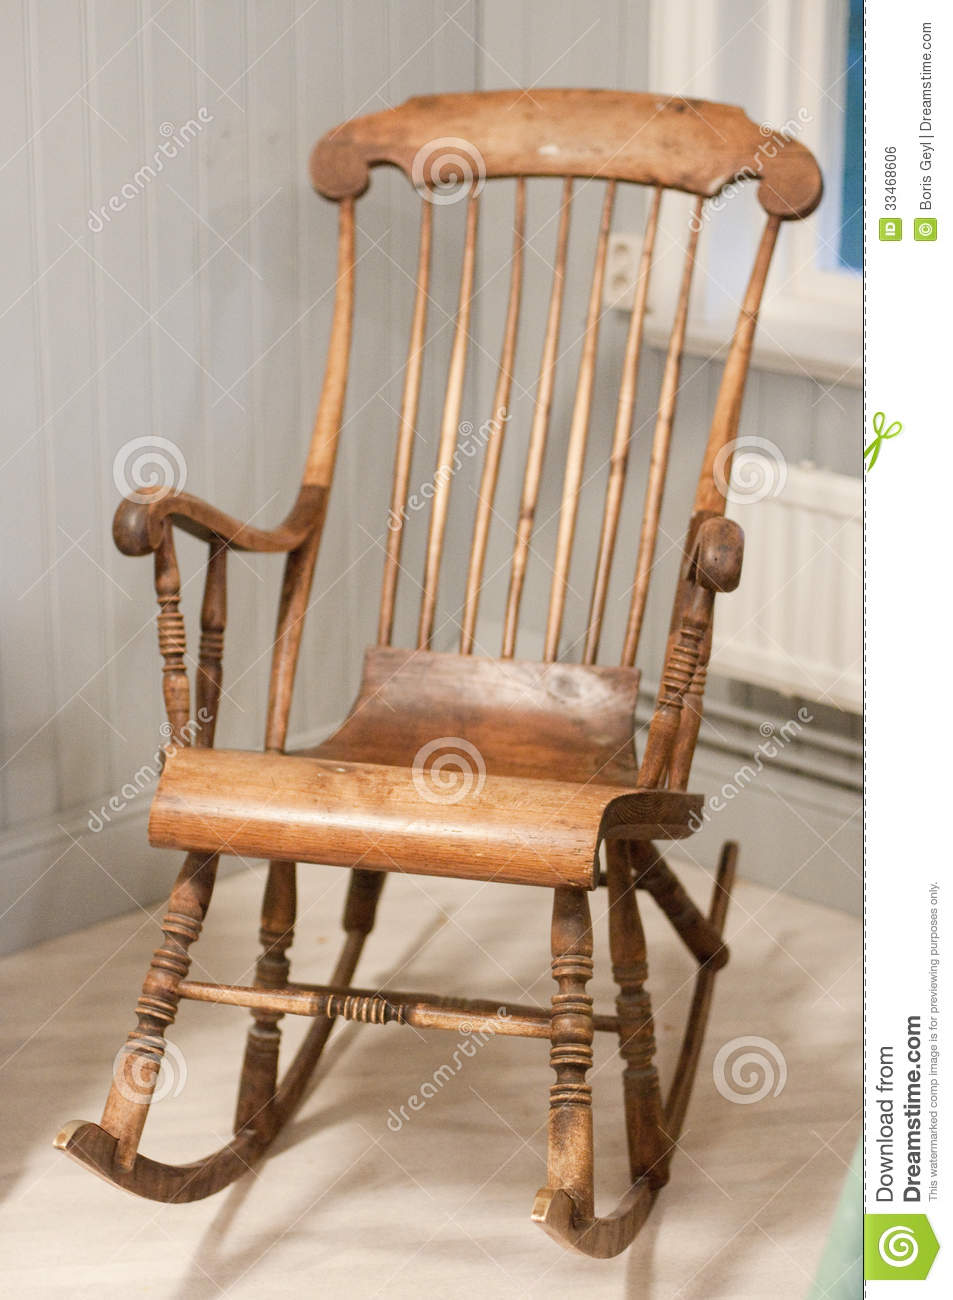 Old Rocking Chair Royalty Free Stock Image - Image: 33468606